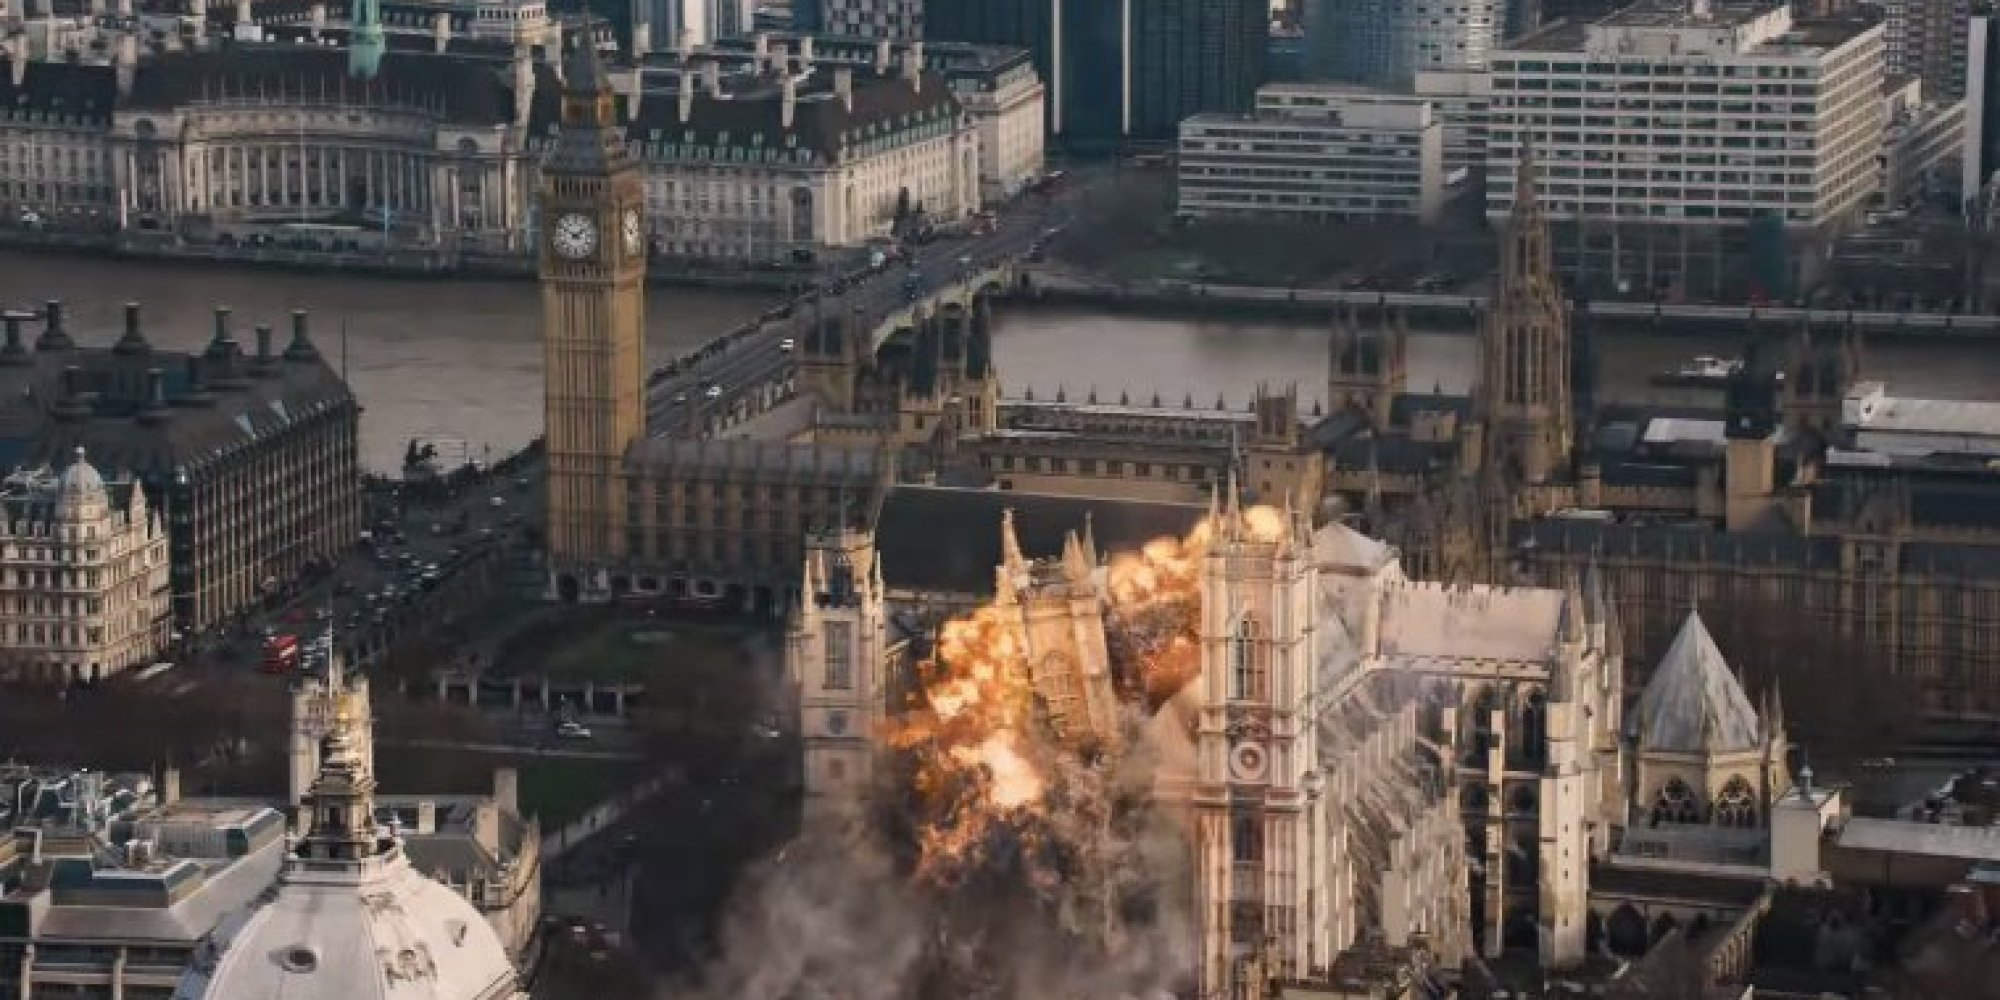 London Has Fallen Wallpaper   HD Wallpapers Backgrounds of Your Choice 2000x1000